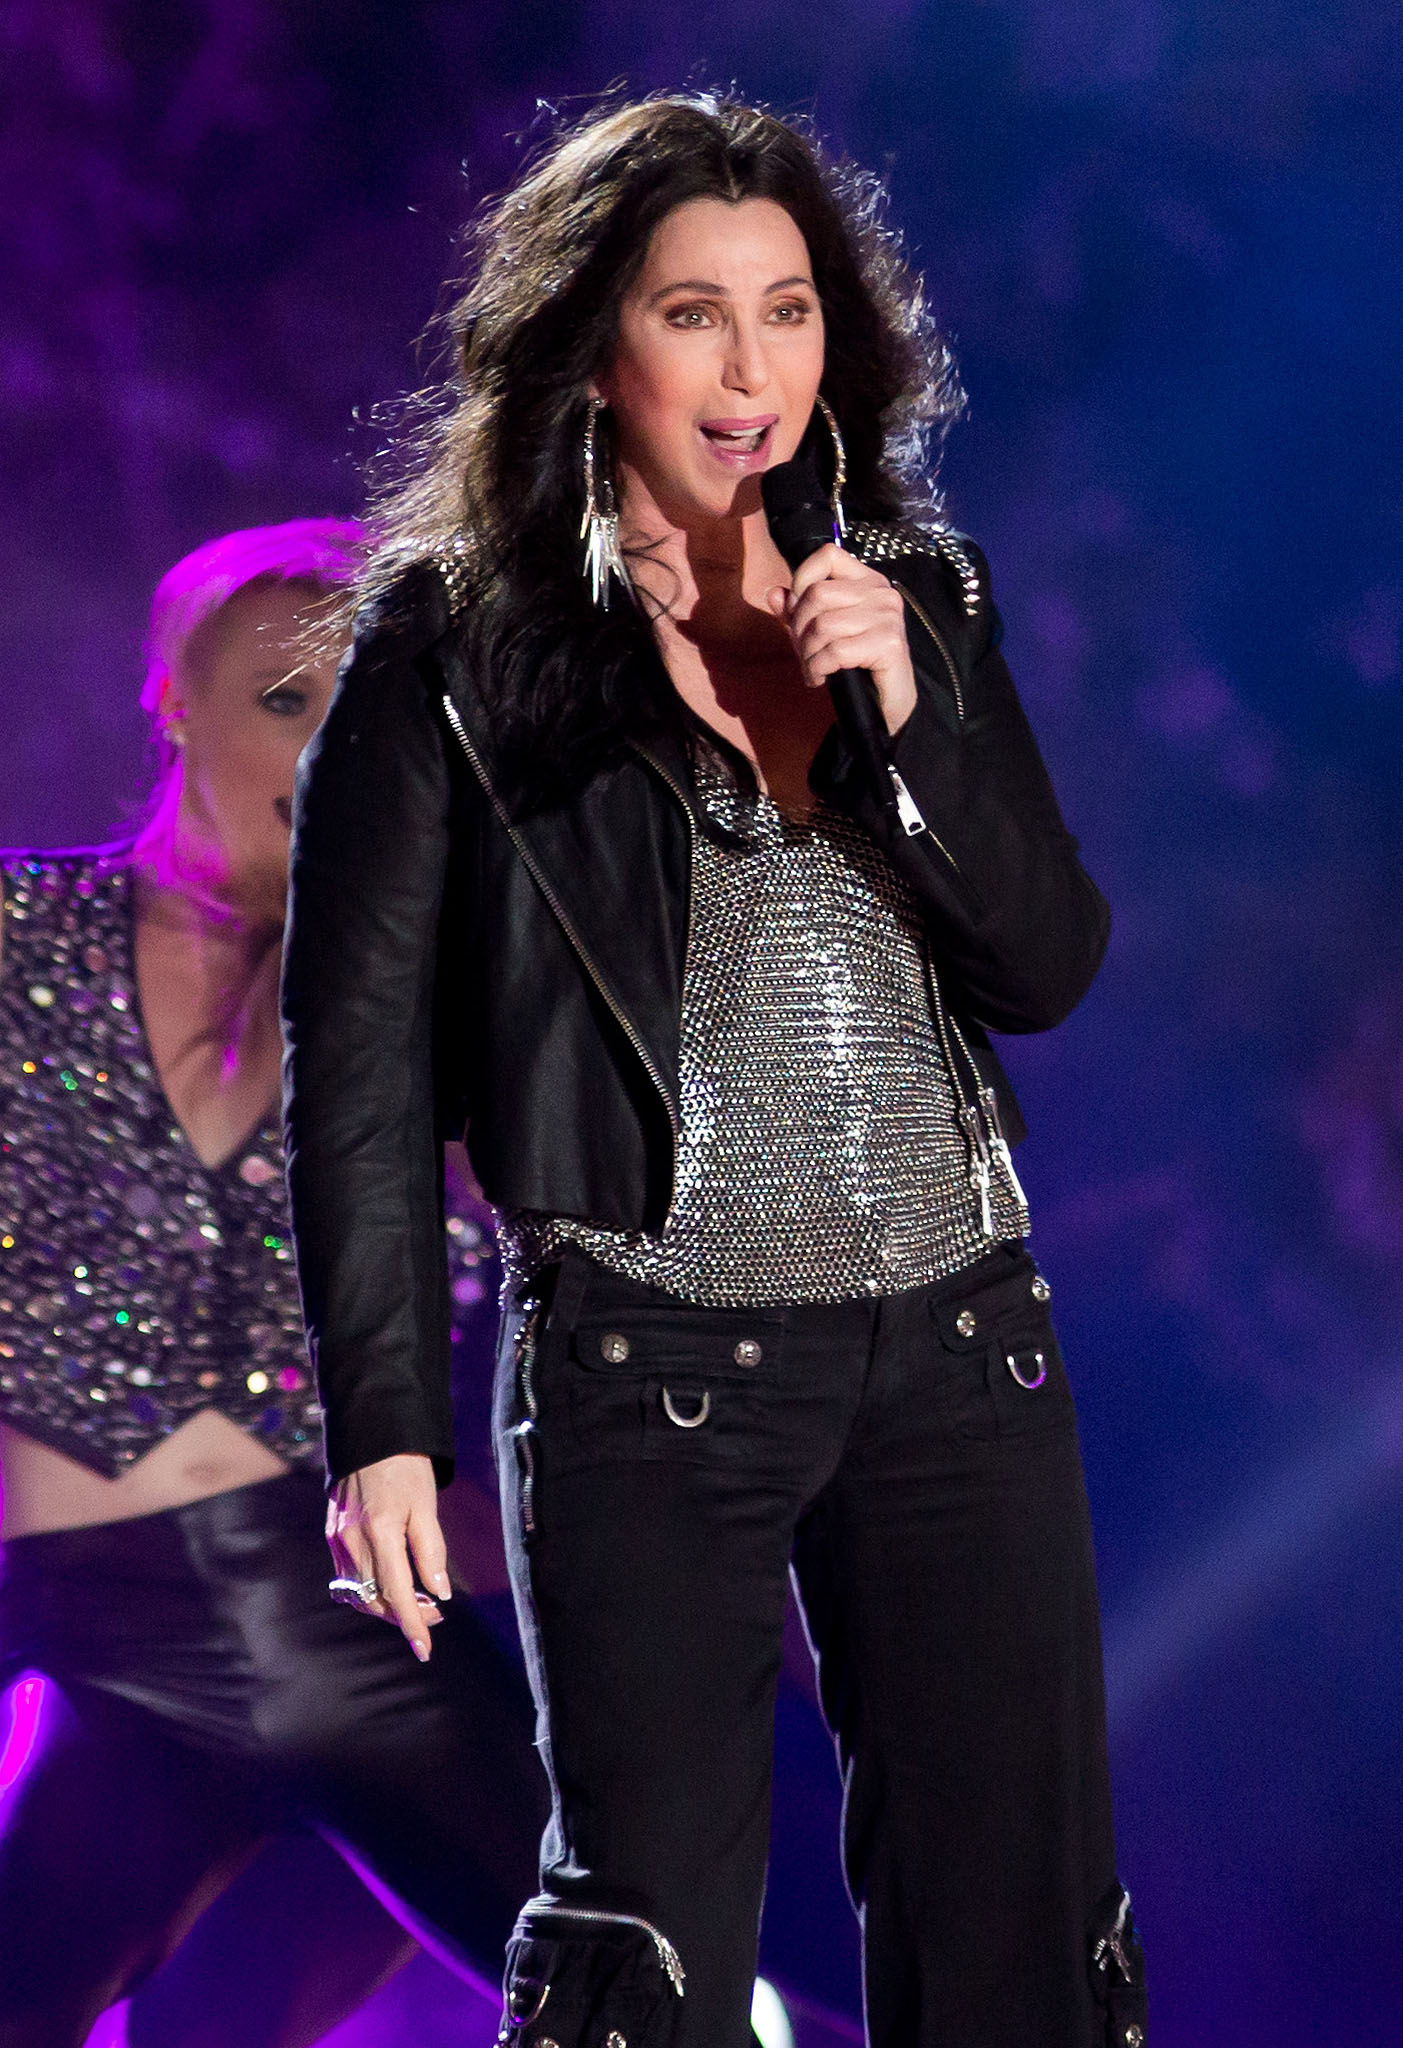 Cher takes the stage. (Splash News)